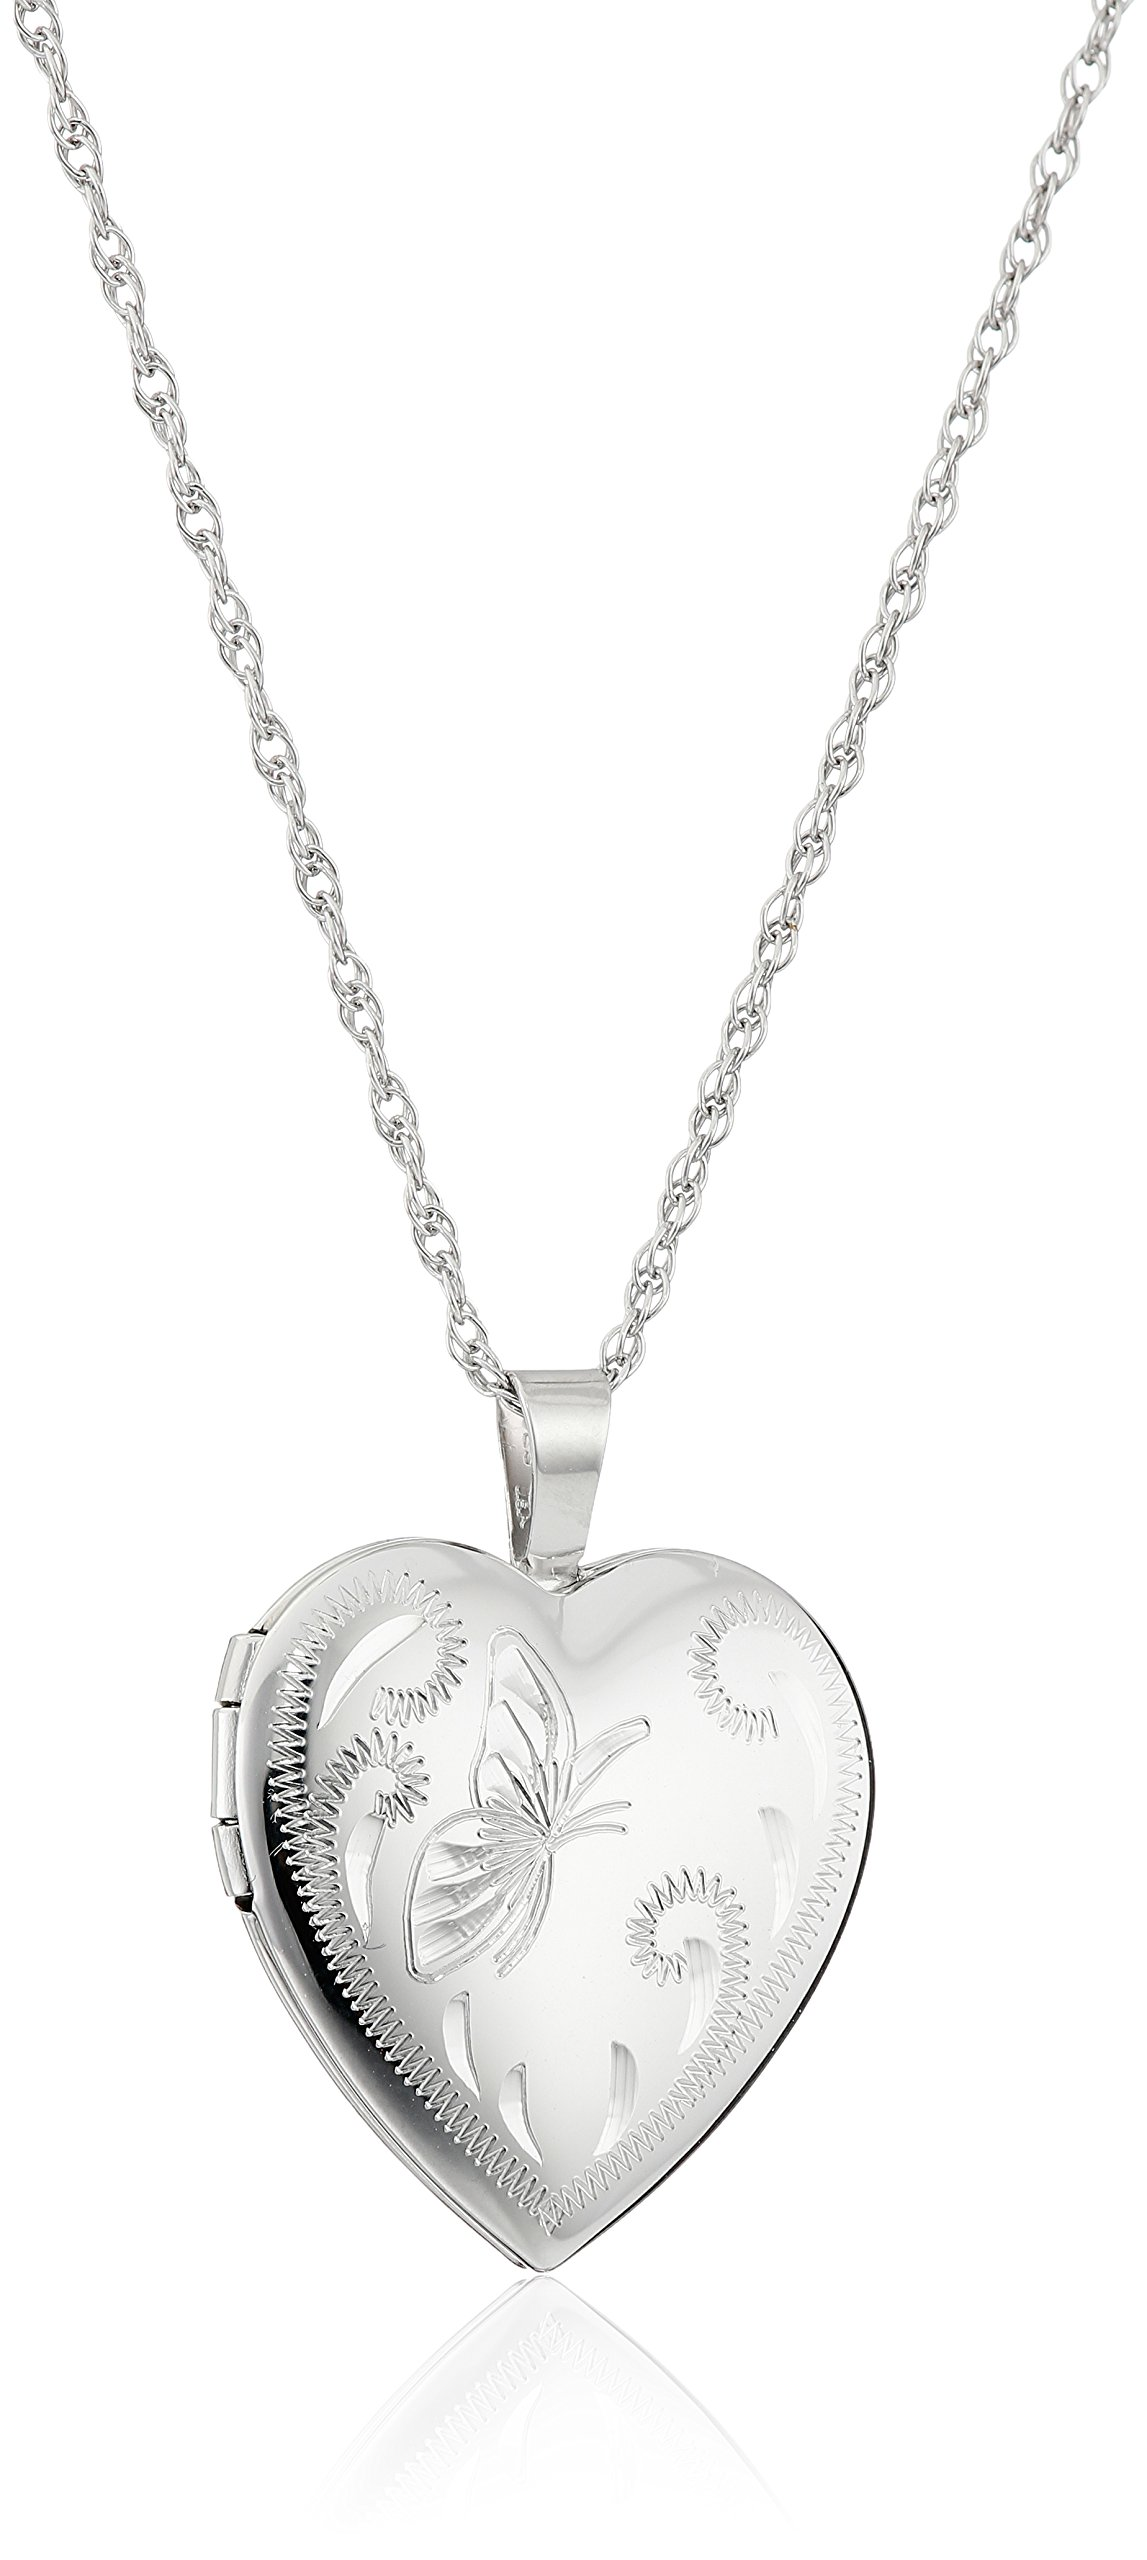 Sterling Silver Heart with Hand Engraved Butterfly Locket Necklace, 18'' by Amazon Collection